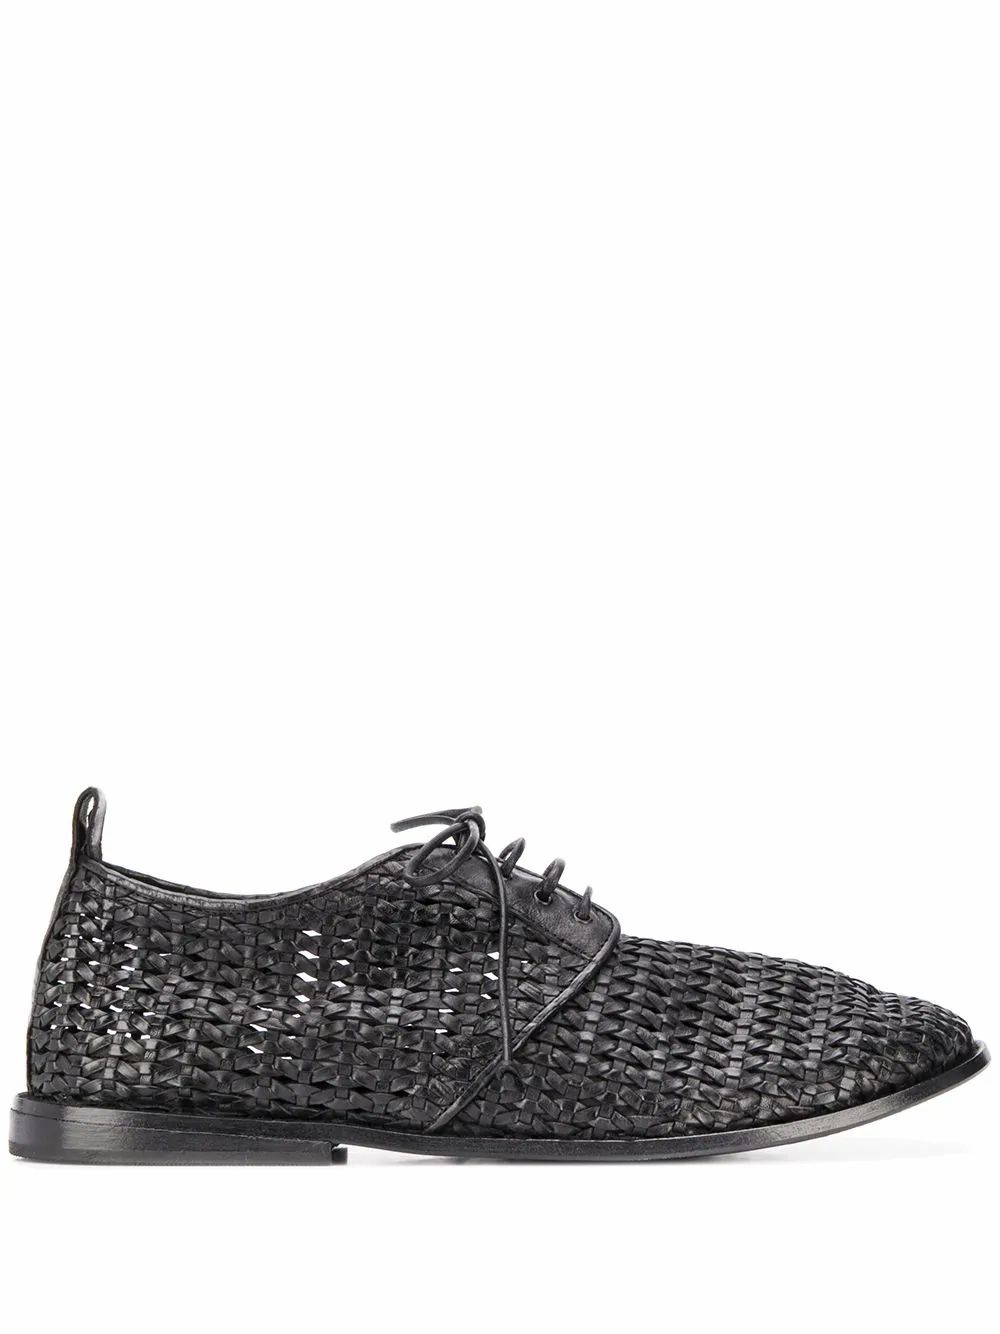 Marsèll Leathers MARSELL MEN'S MM3078900666S661 BLACK LEATHER LACE-UP SHOES